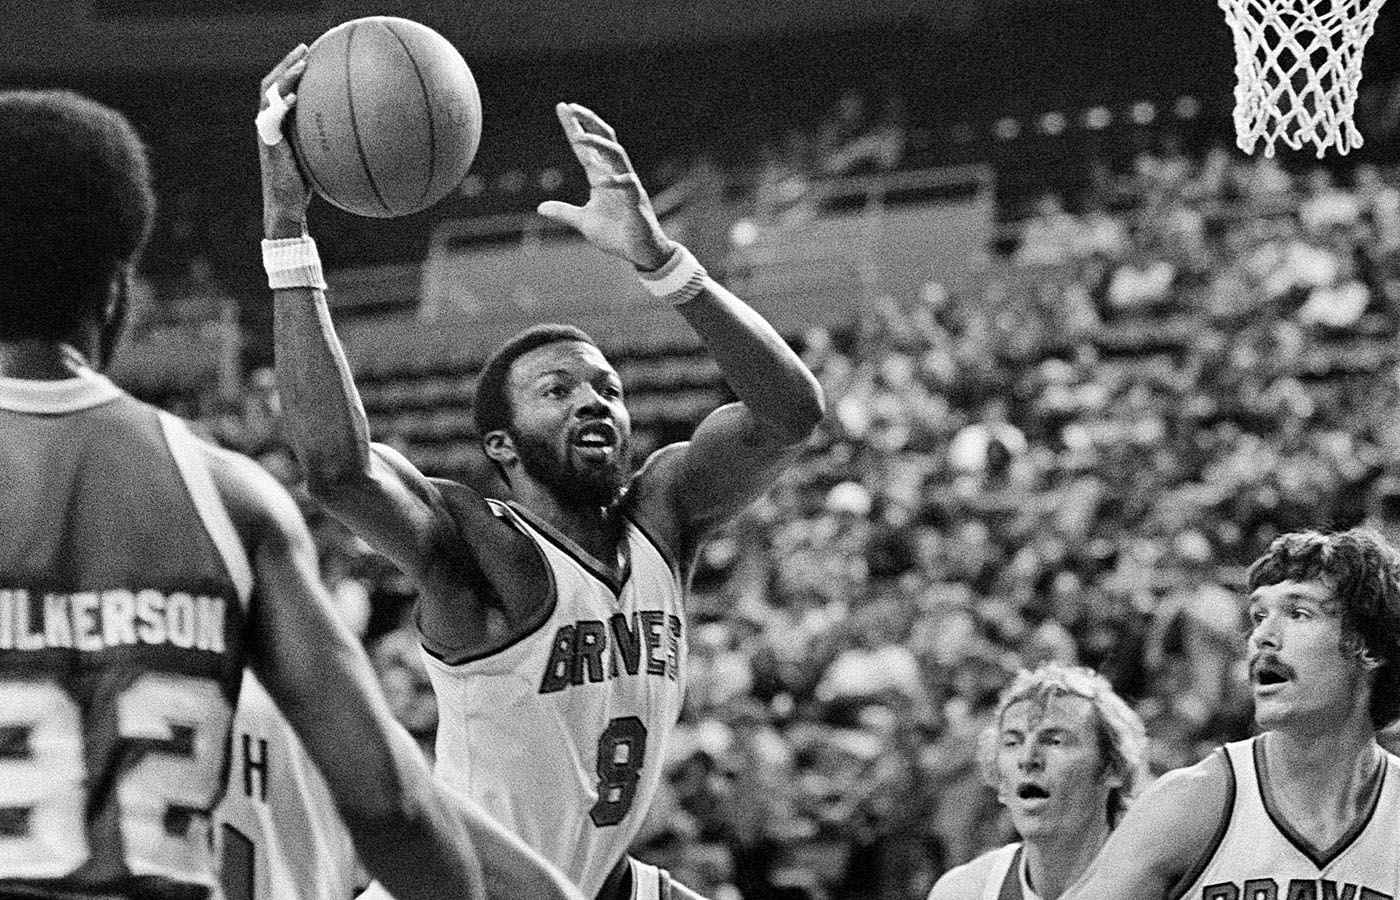 Marvin Barnes: What a talent, what a waste - The Boston Globe